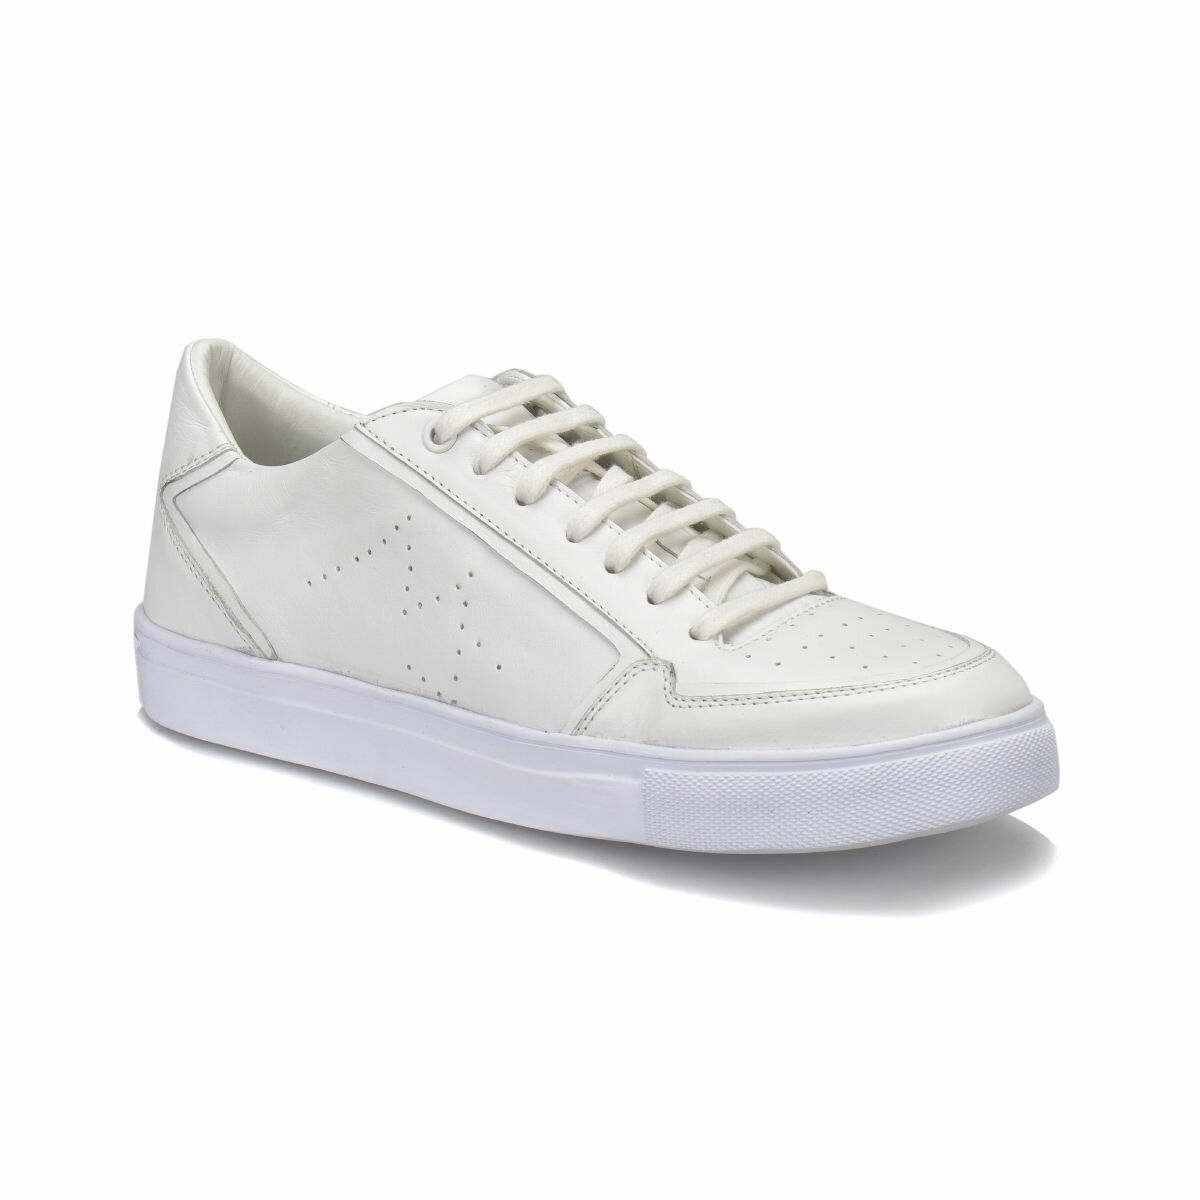 FLO 980 White Male Shoes Forester